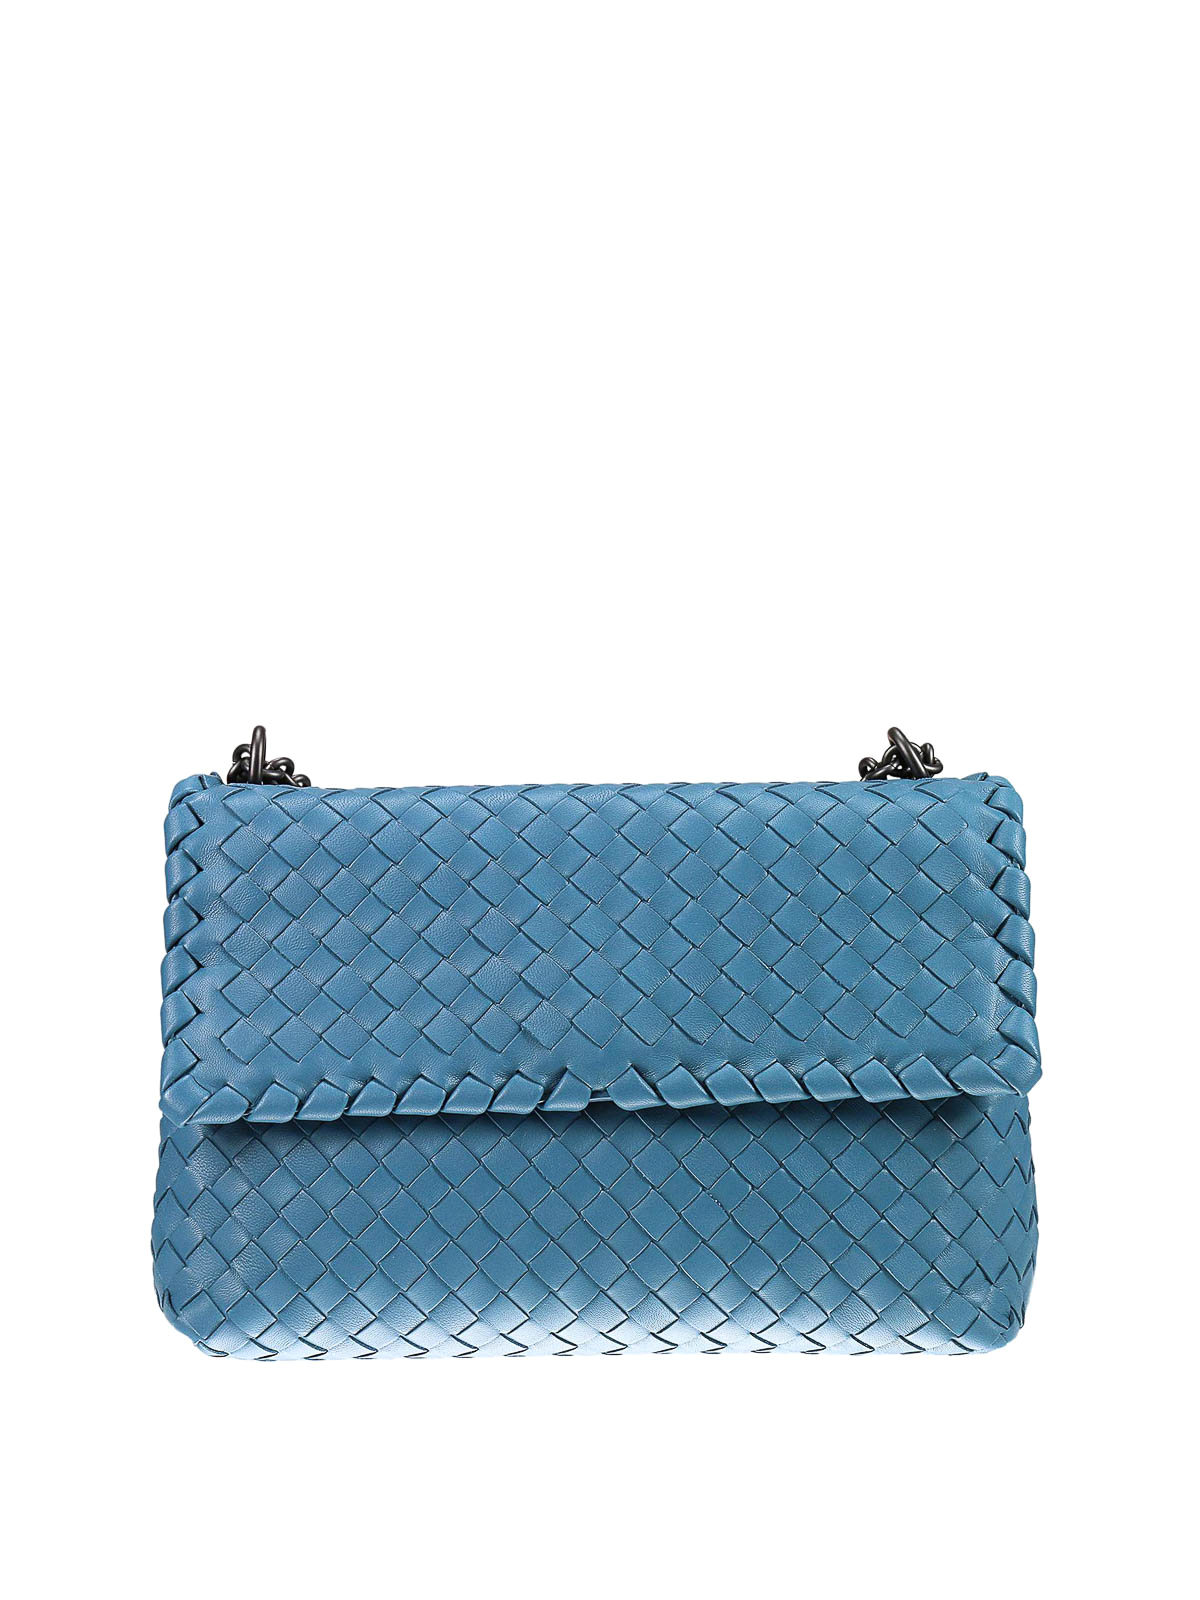 Bottega Veneta - Olimpia Intrecciato small bag - cross body bags ... 89f1808fe8a69